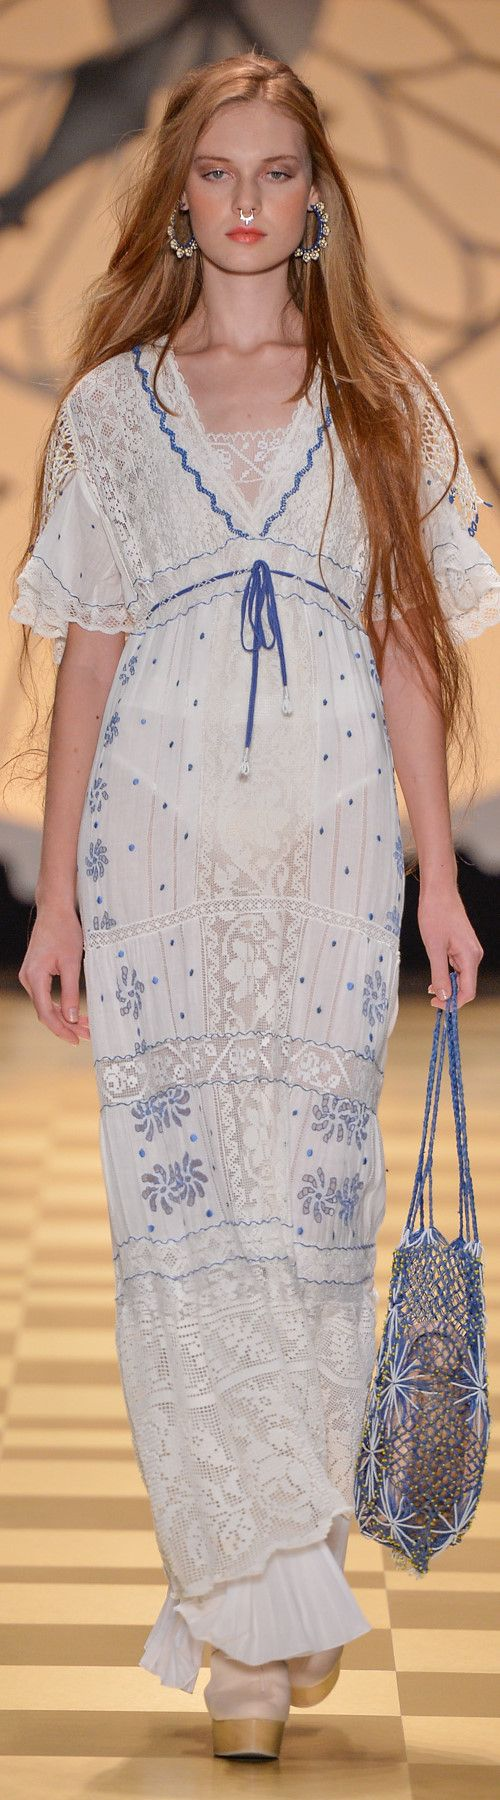 ISABELA CAPETO, SPFW, Summer 2017 RTW - Filet Lace and Filet Crochet Insertions